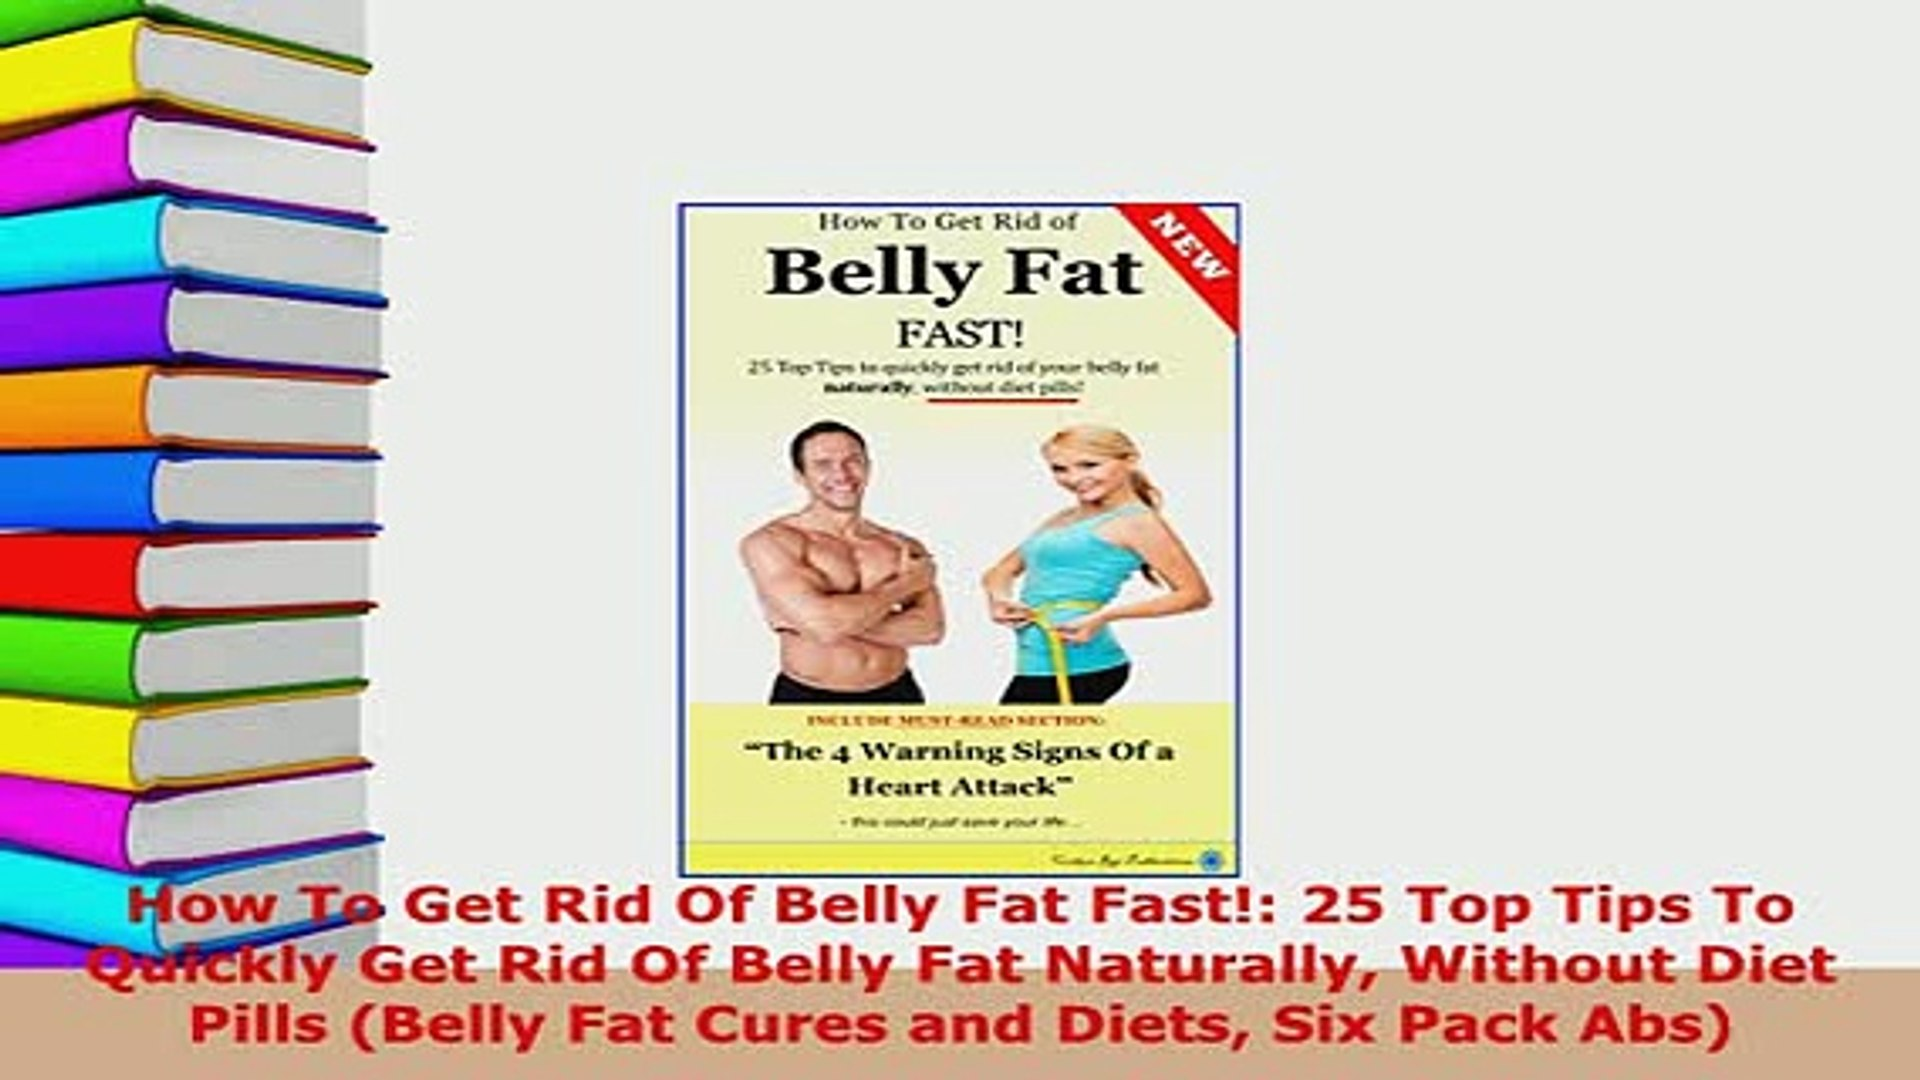 Pdf How To Get Rid Of Belly Fat Fast 25 Top Tips To Quickly Get Rid Of Belly Fat Naturally Free Books